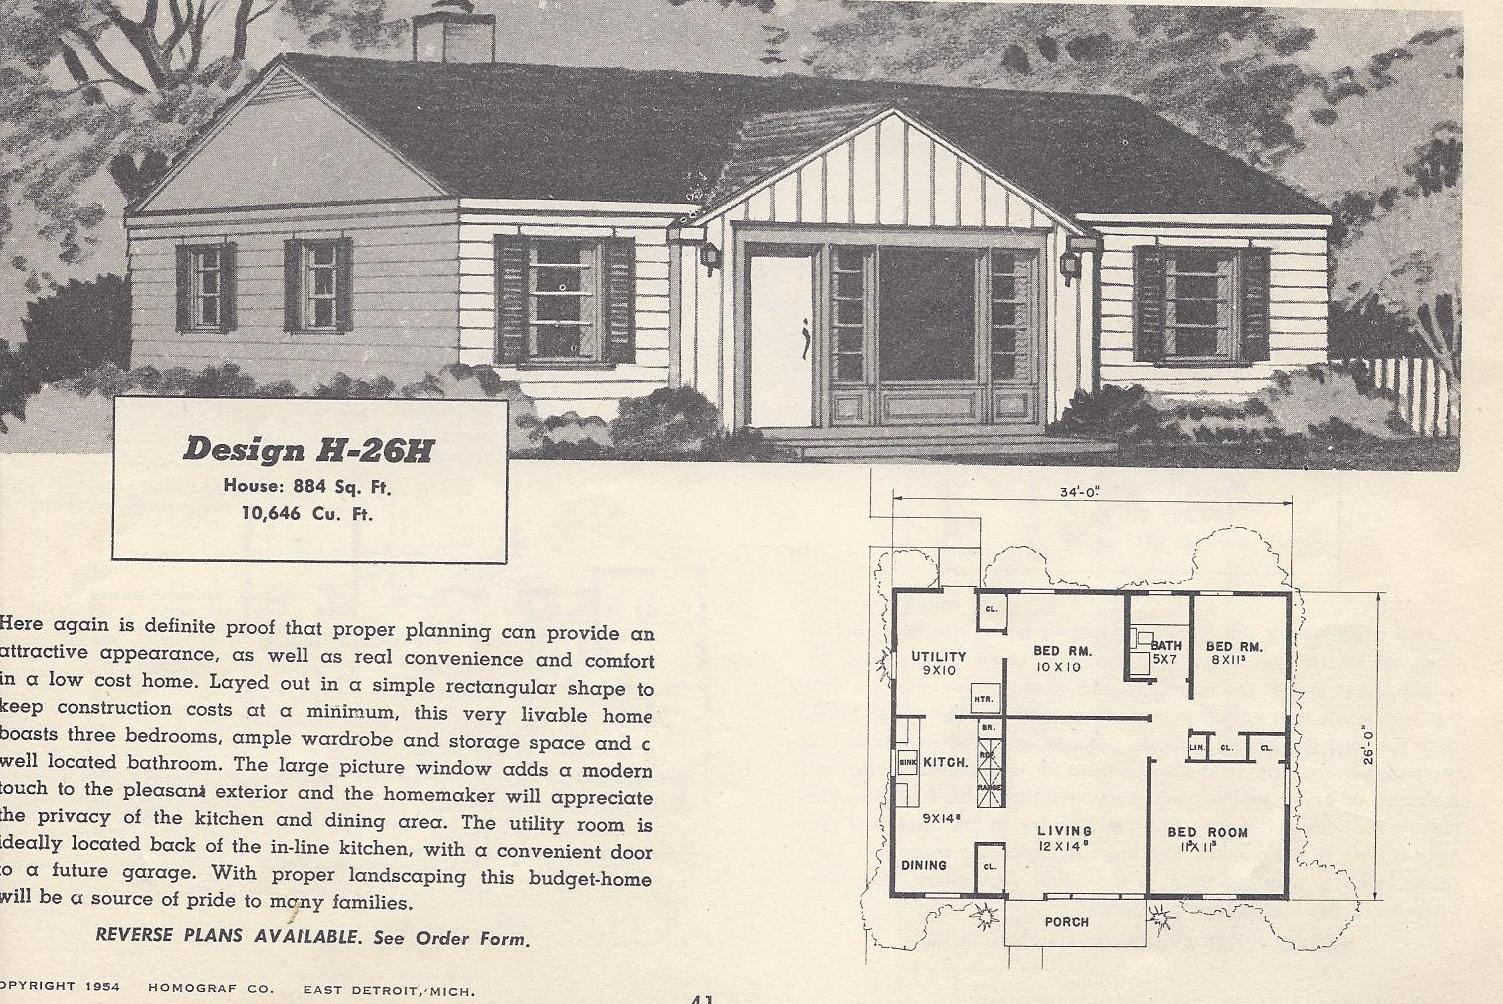 Vintage house plans 26h antique alter ego for Vintage ranch house plans